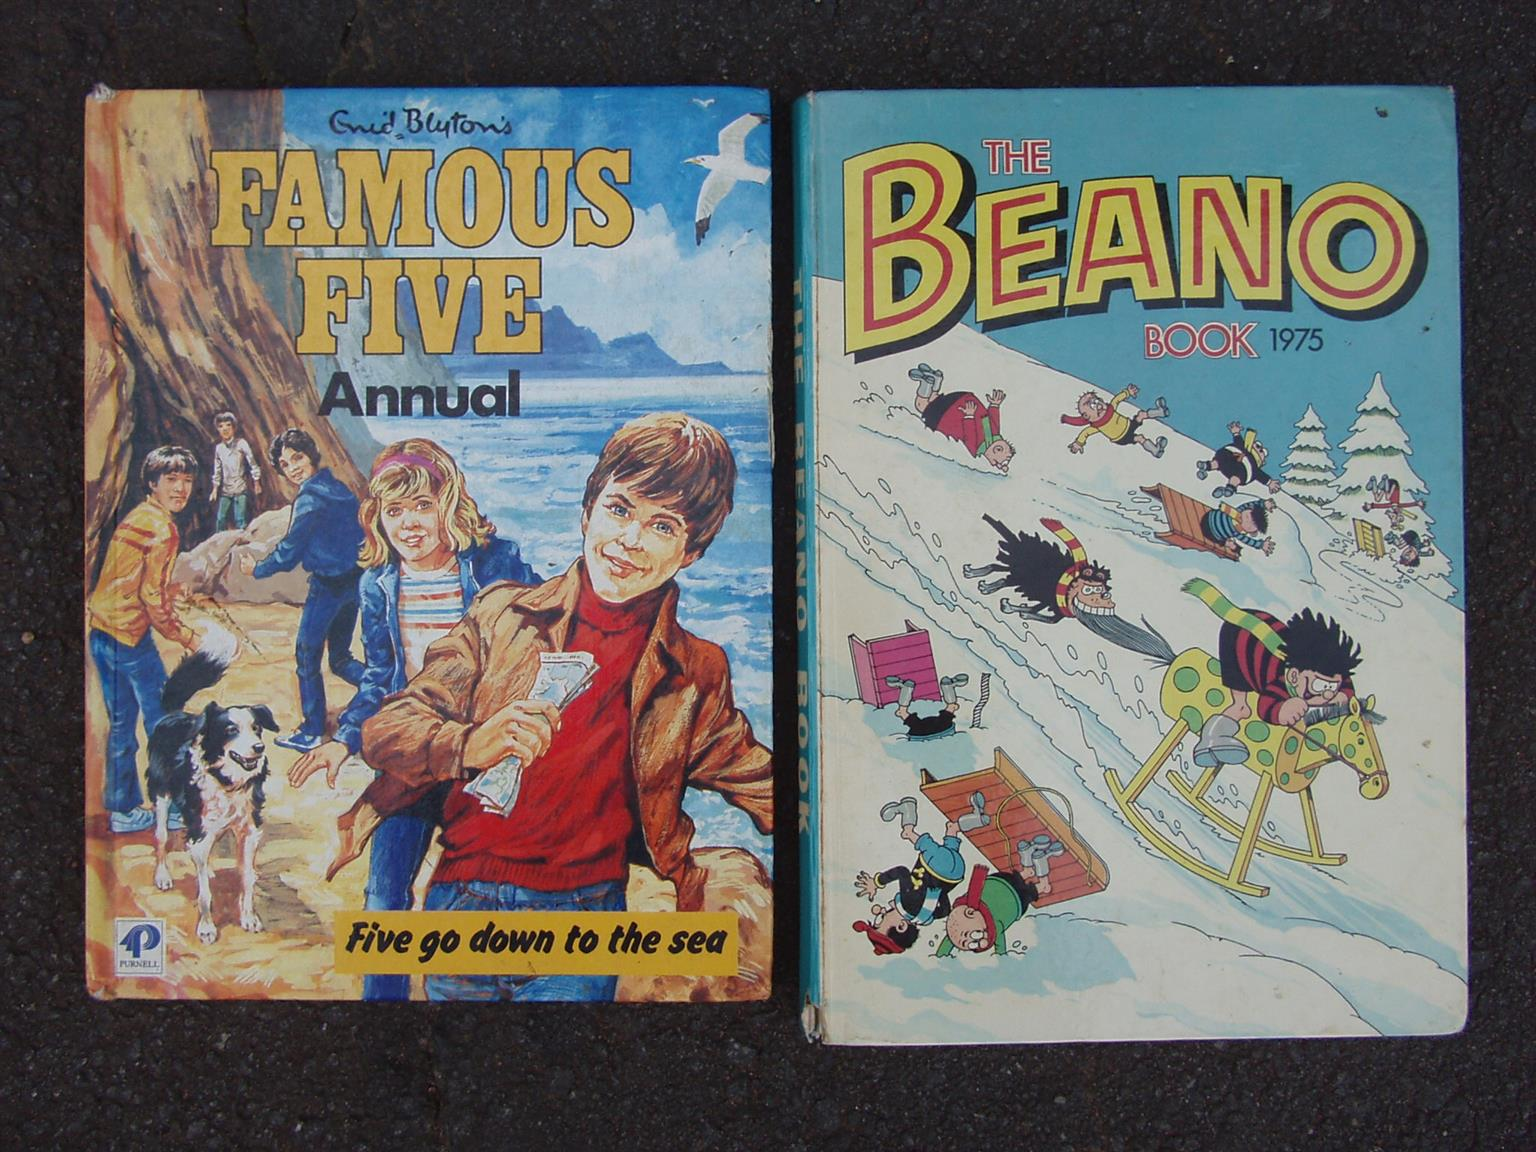 Famous Five Annual and The Beano Book - both books in good condition - R 750